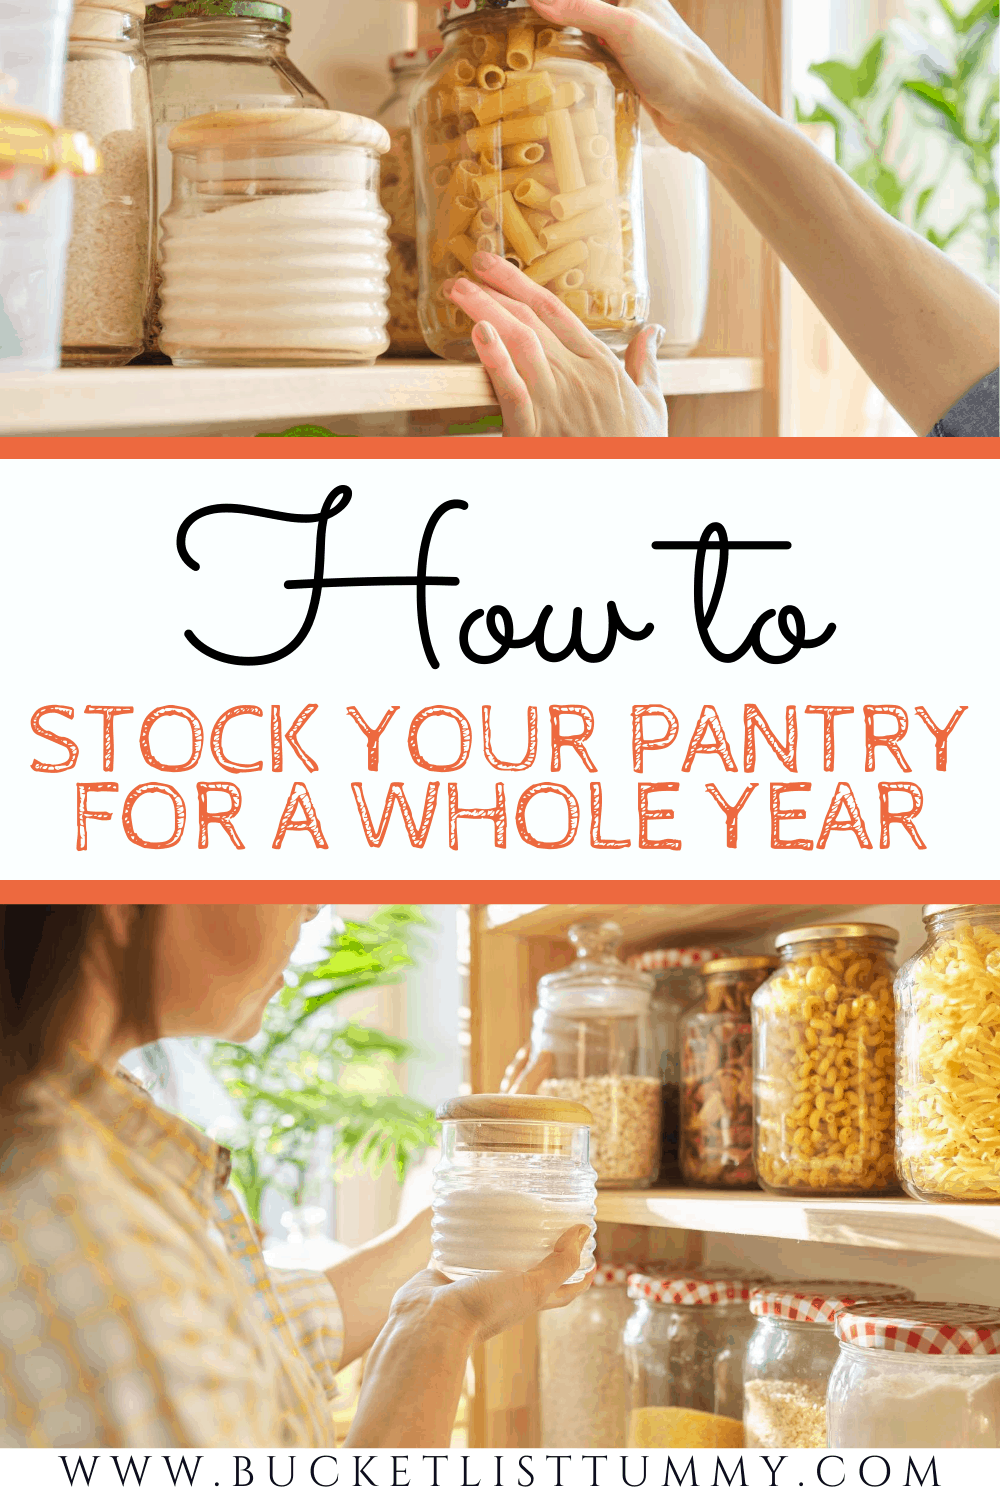 grains and pantry shelves with text overlay